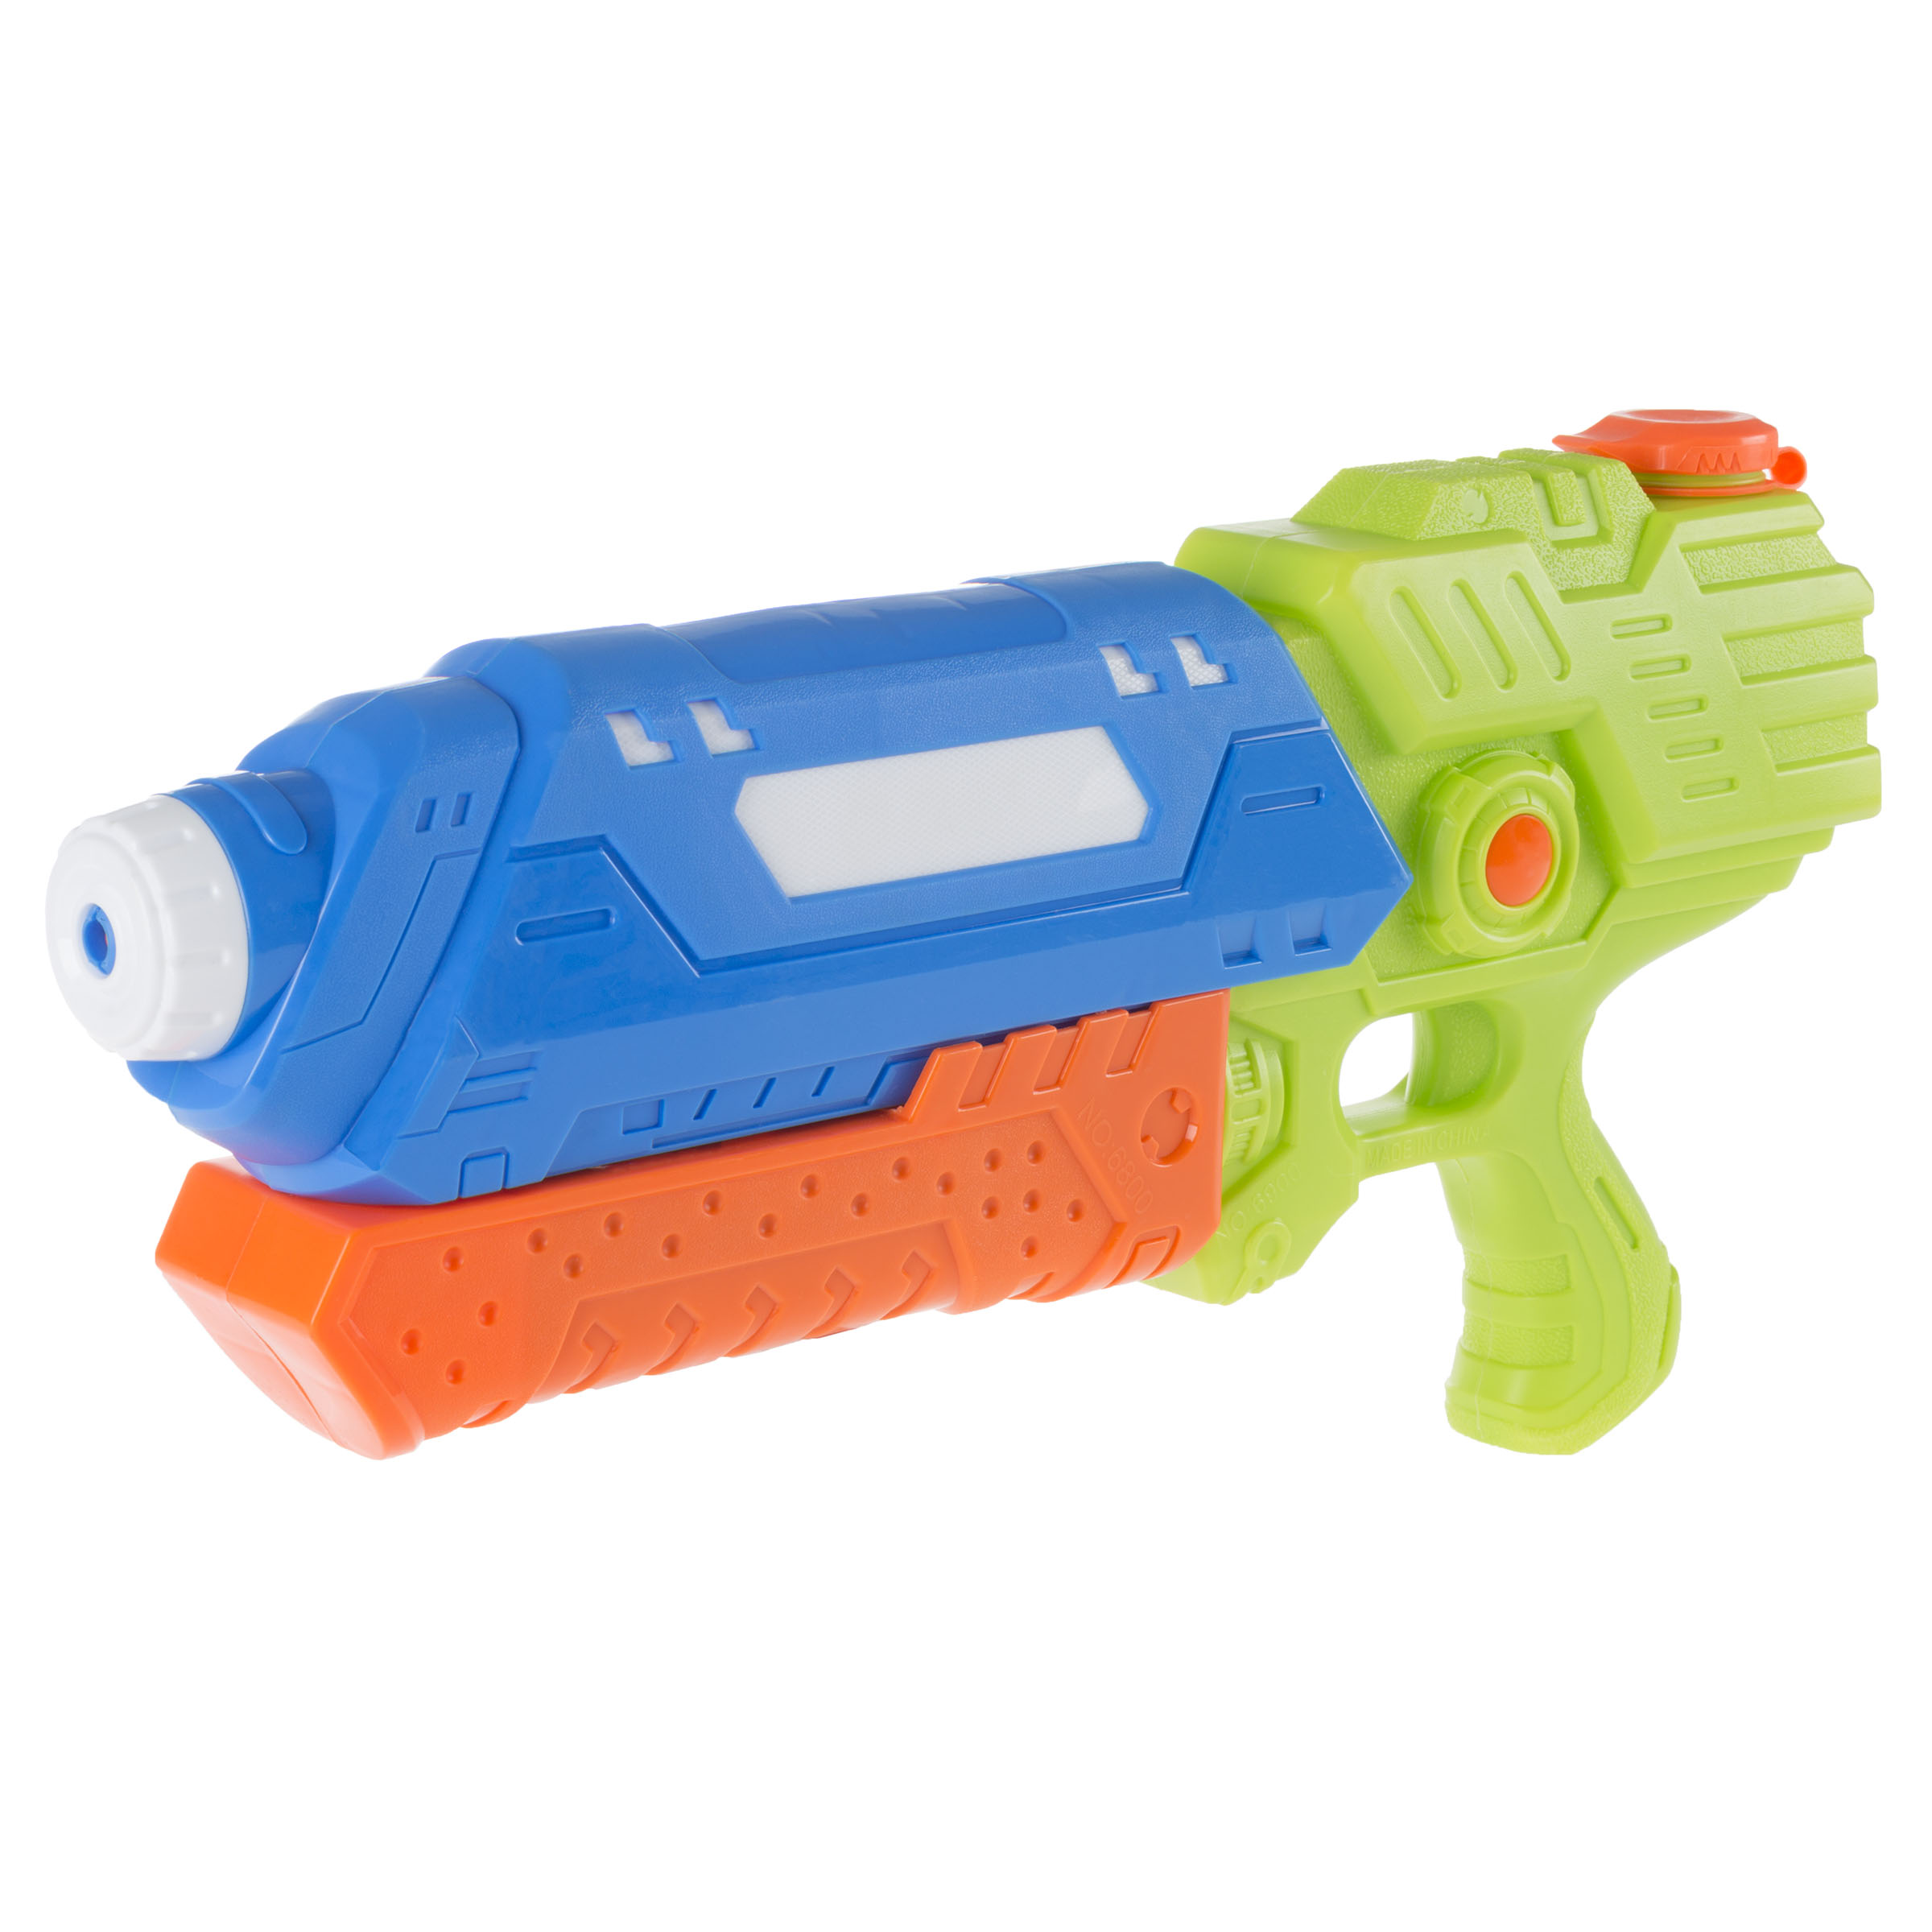 Water Gun Soaker with Air Pressure Pump- Lightweight Squirt Gun Toy for Beach, Pool and Outdoor Games for Kids and Adults by Hey! Play! (Blue/Orange)